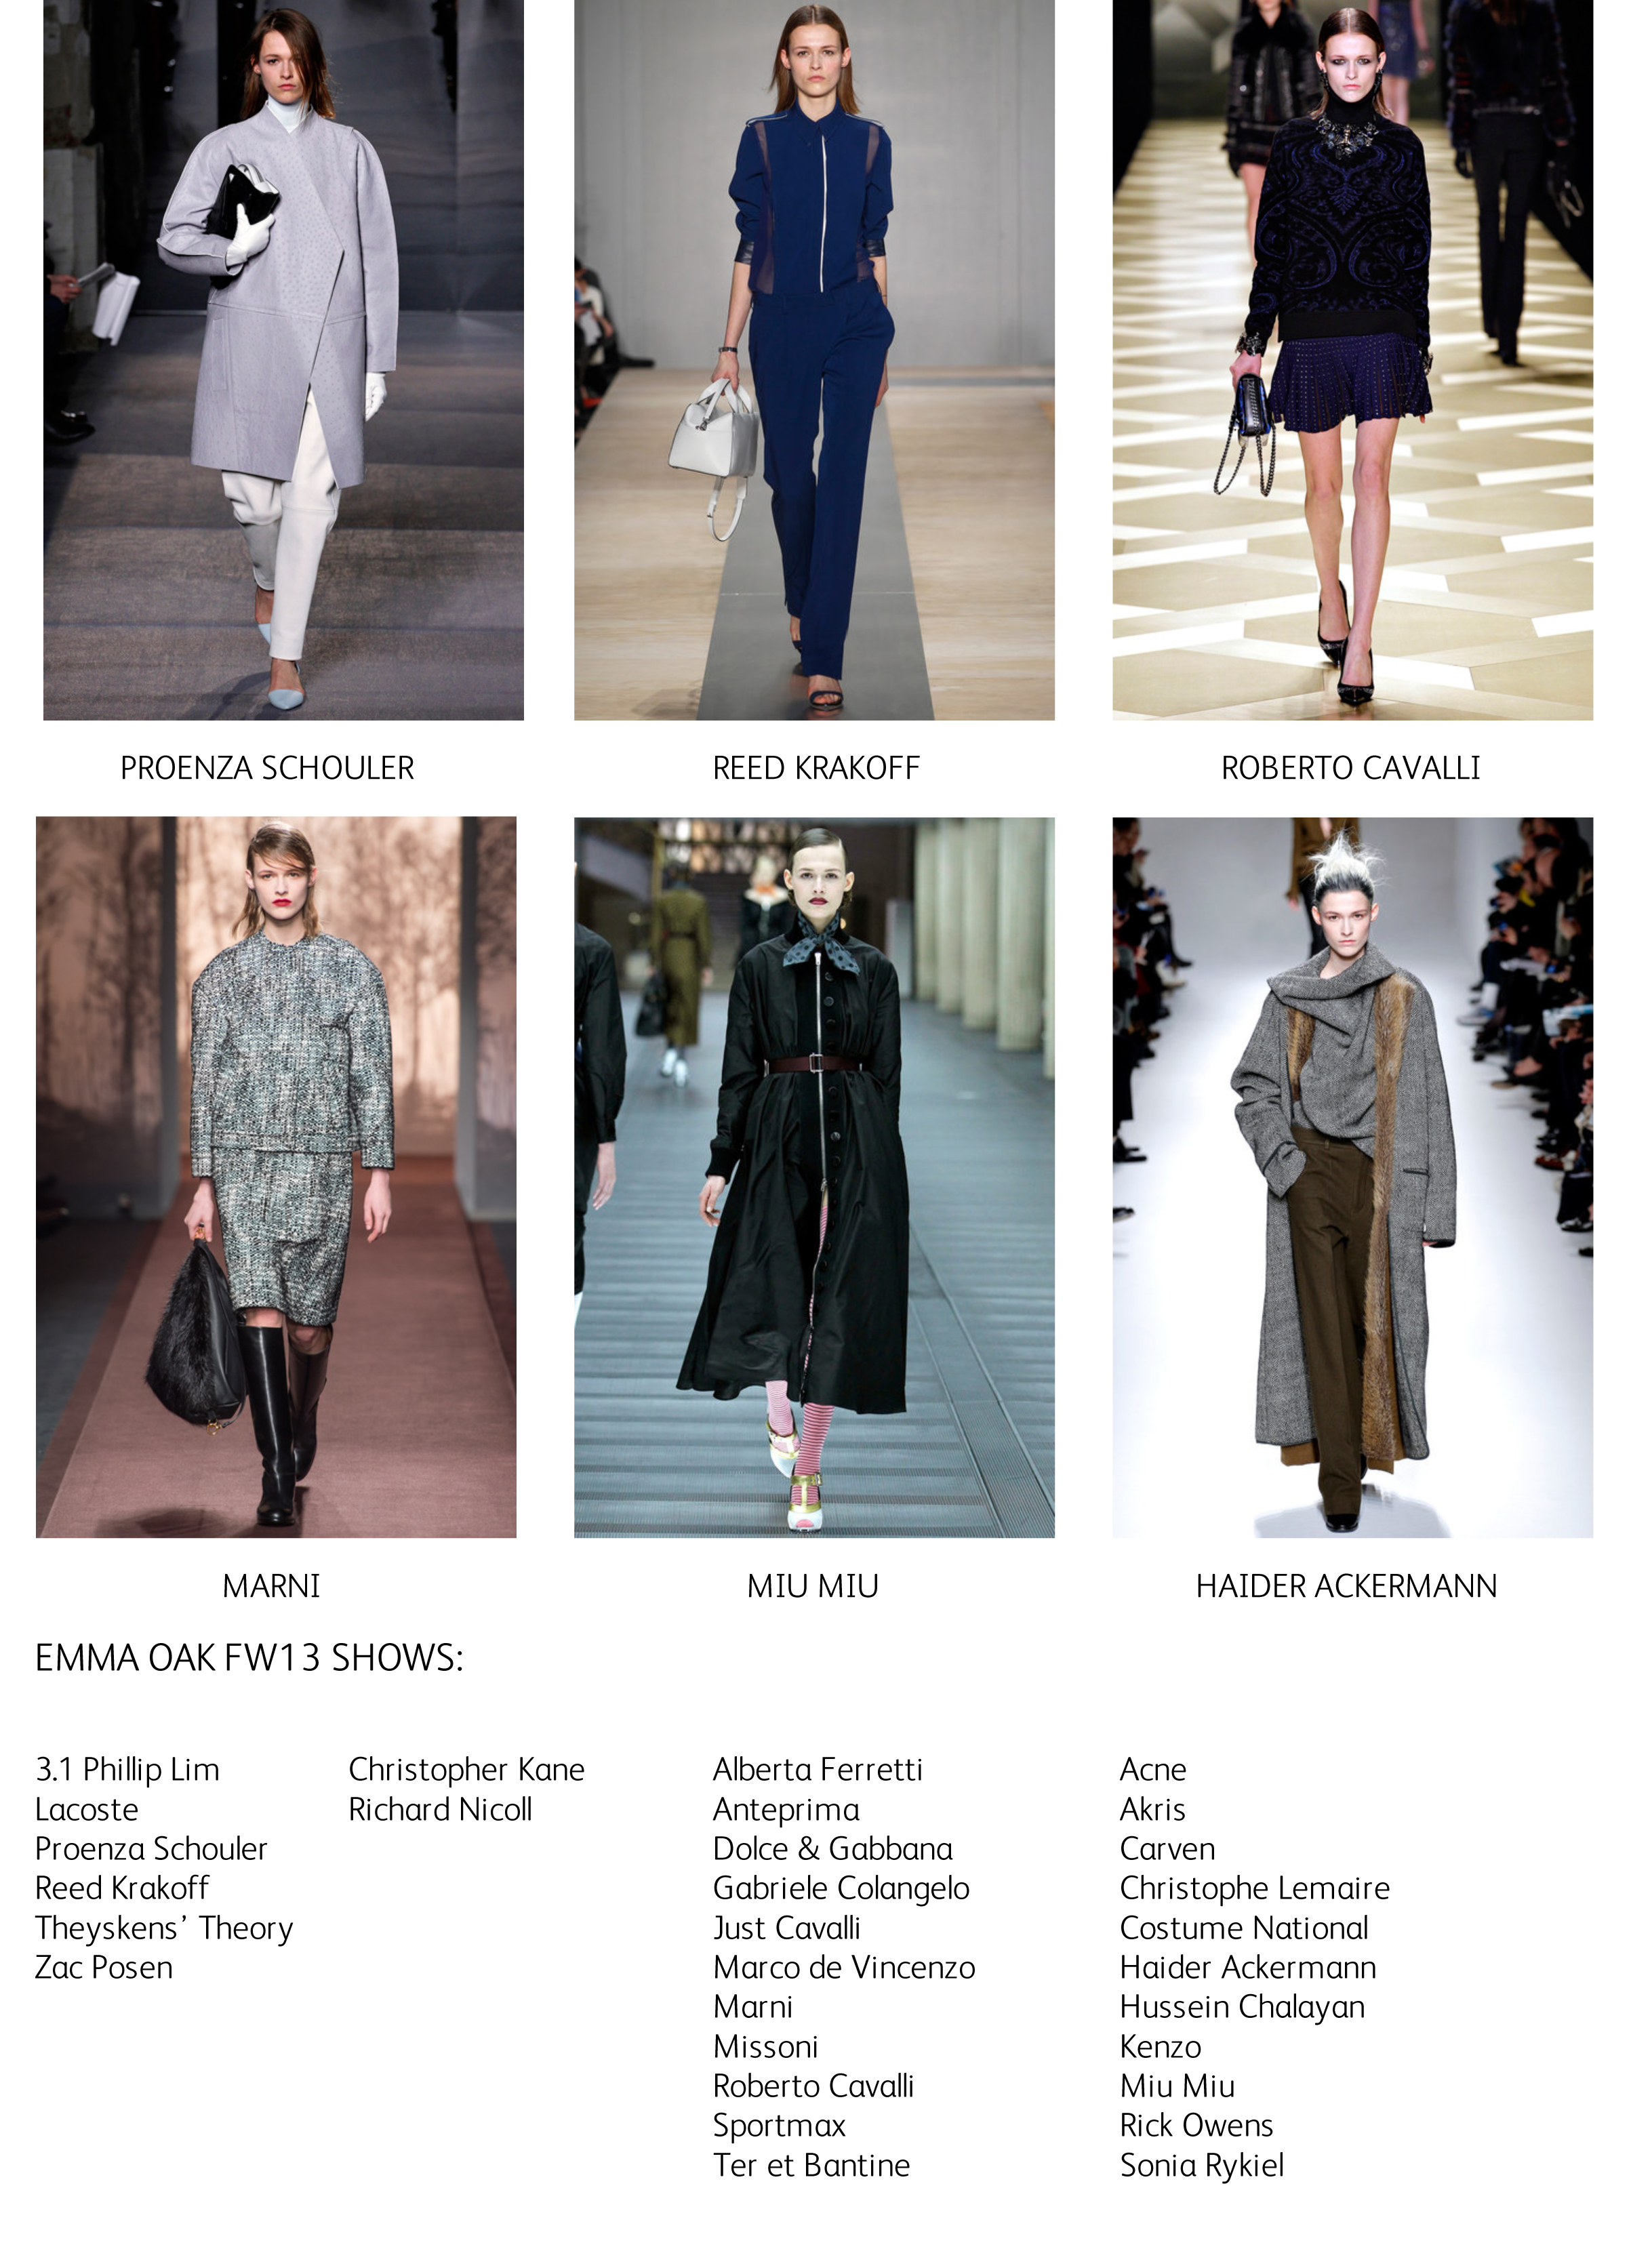 EMMA FW13 shows